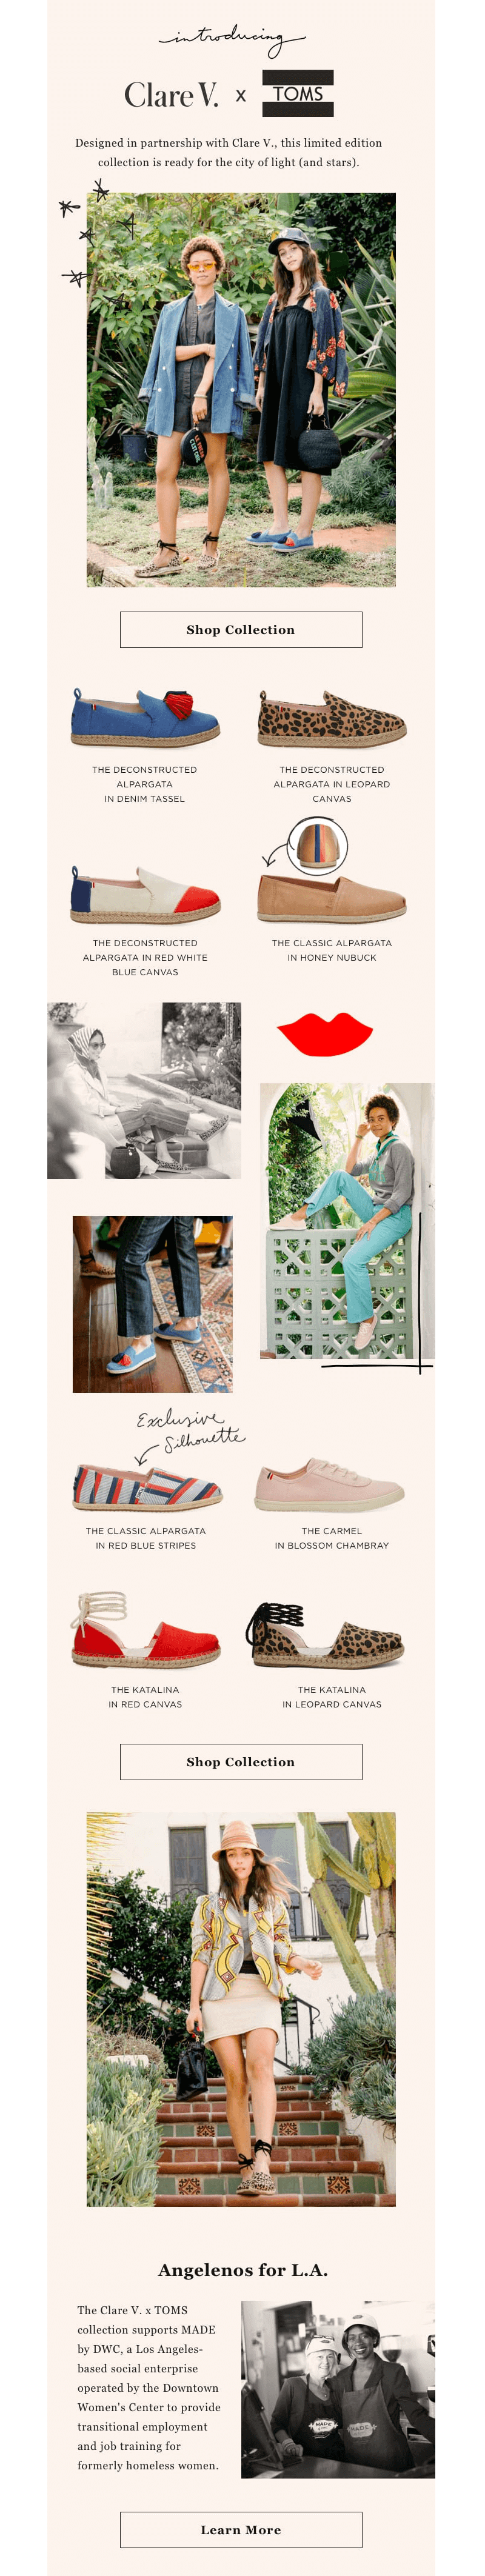 TOMS Clare V. brand collaboration emails